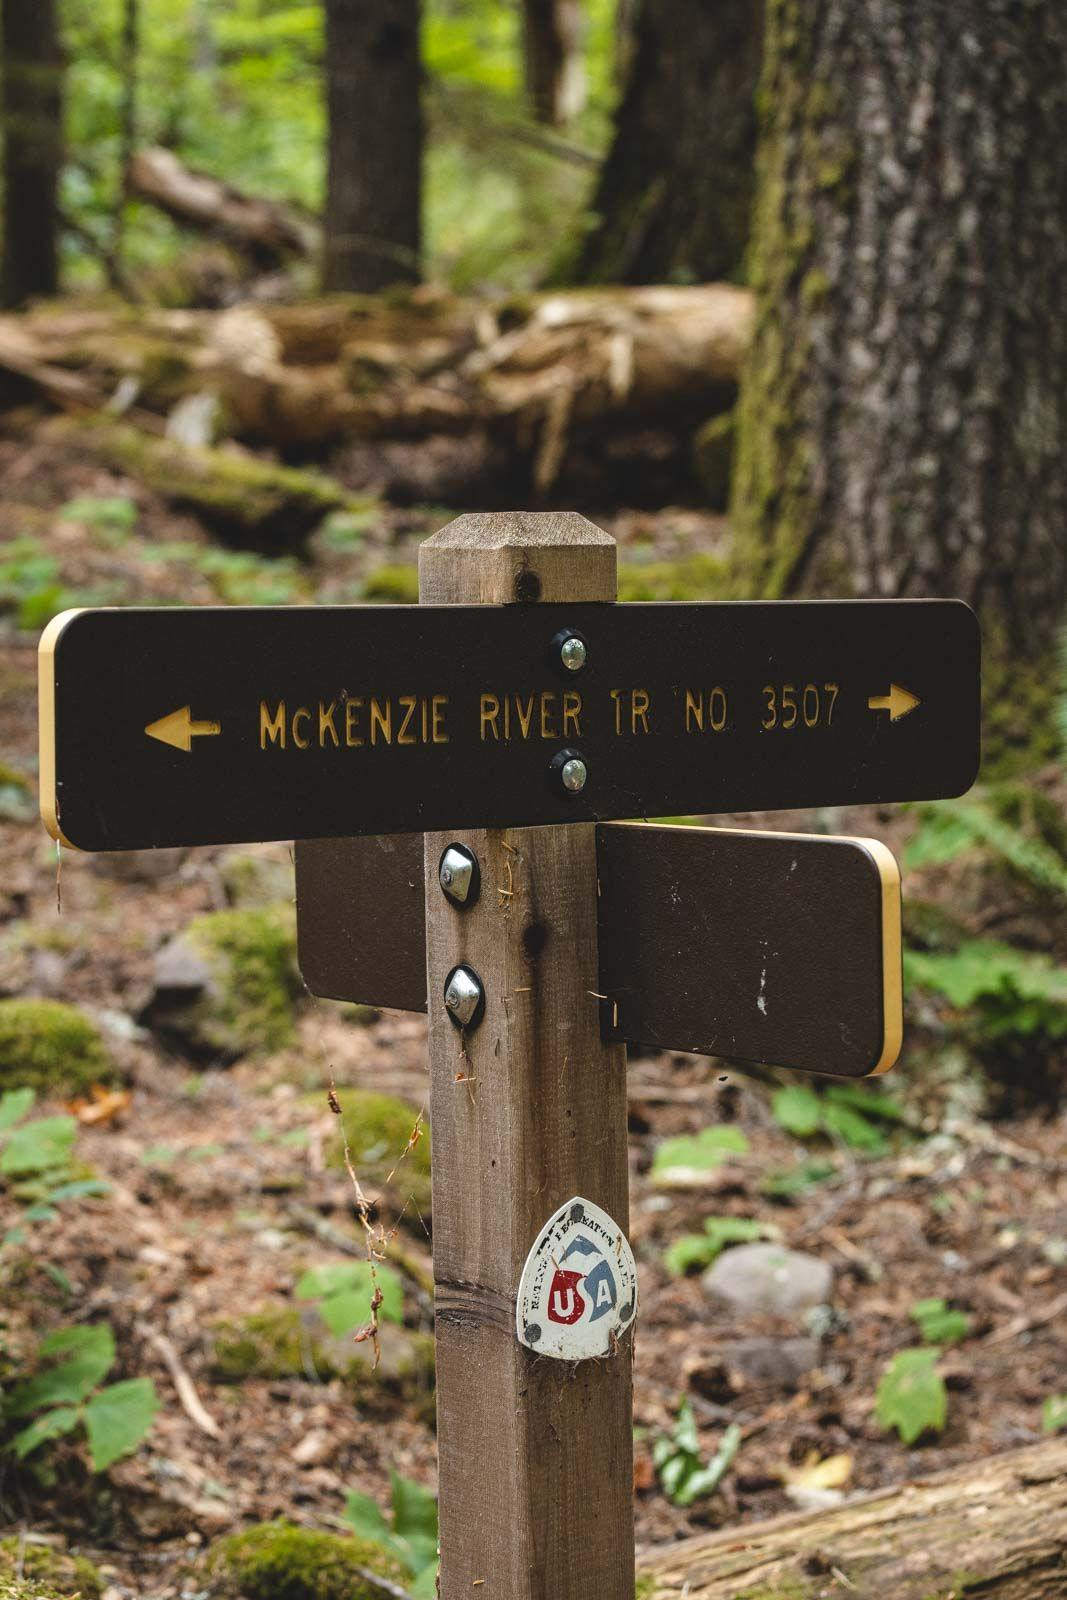 The McKenzie River Trail direction sign in forest